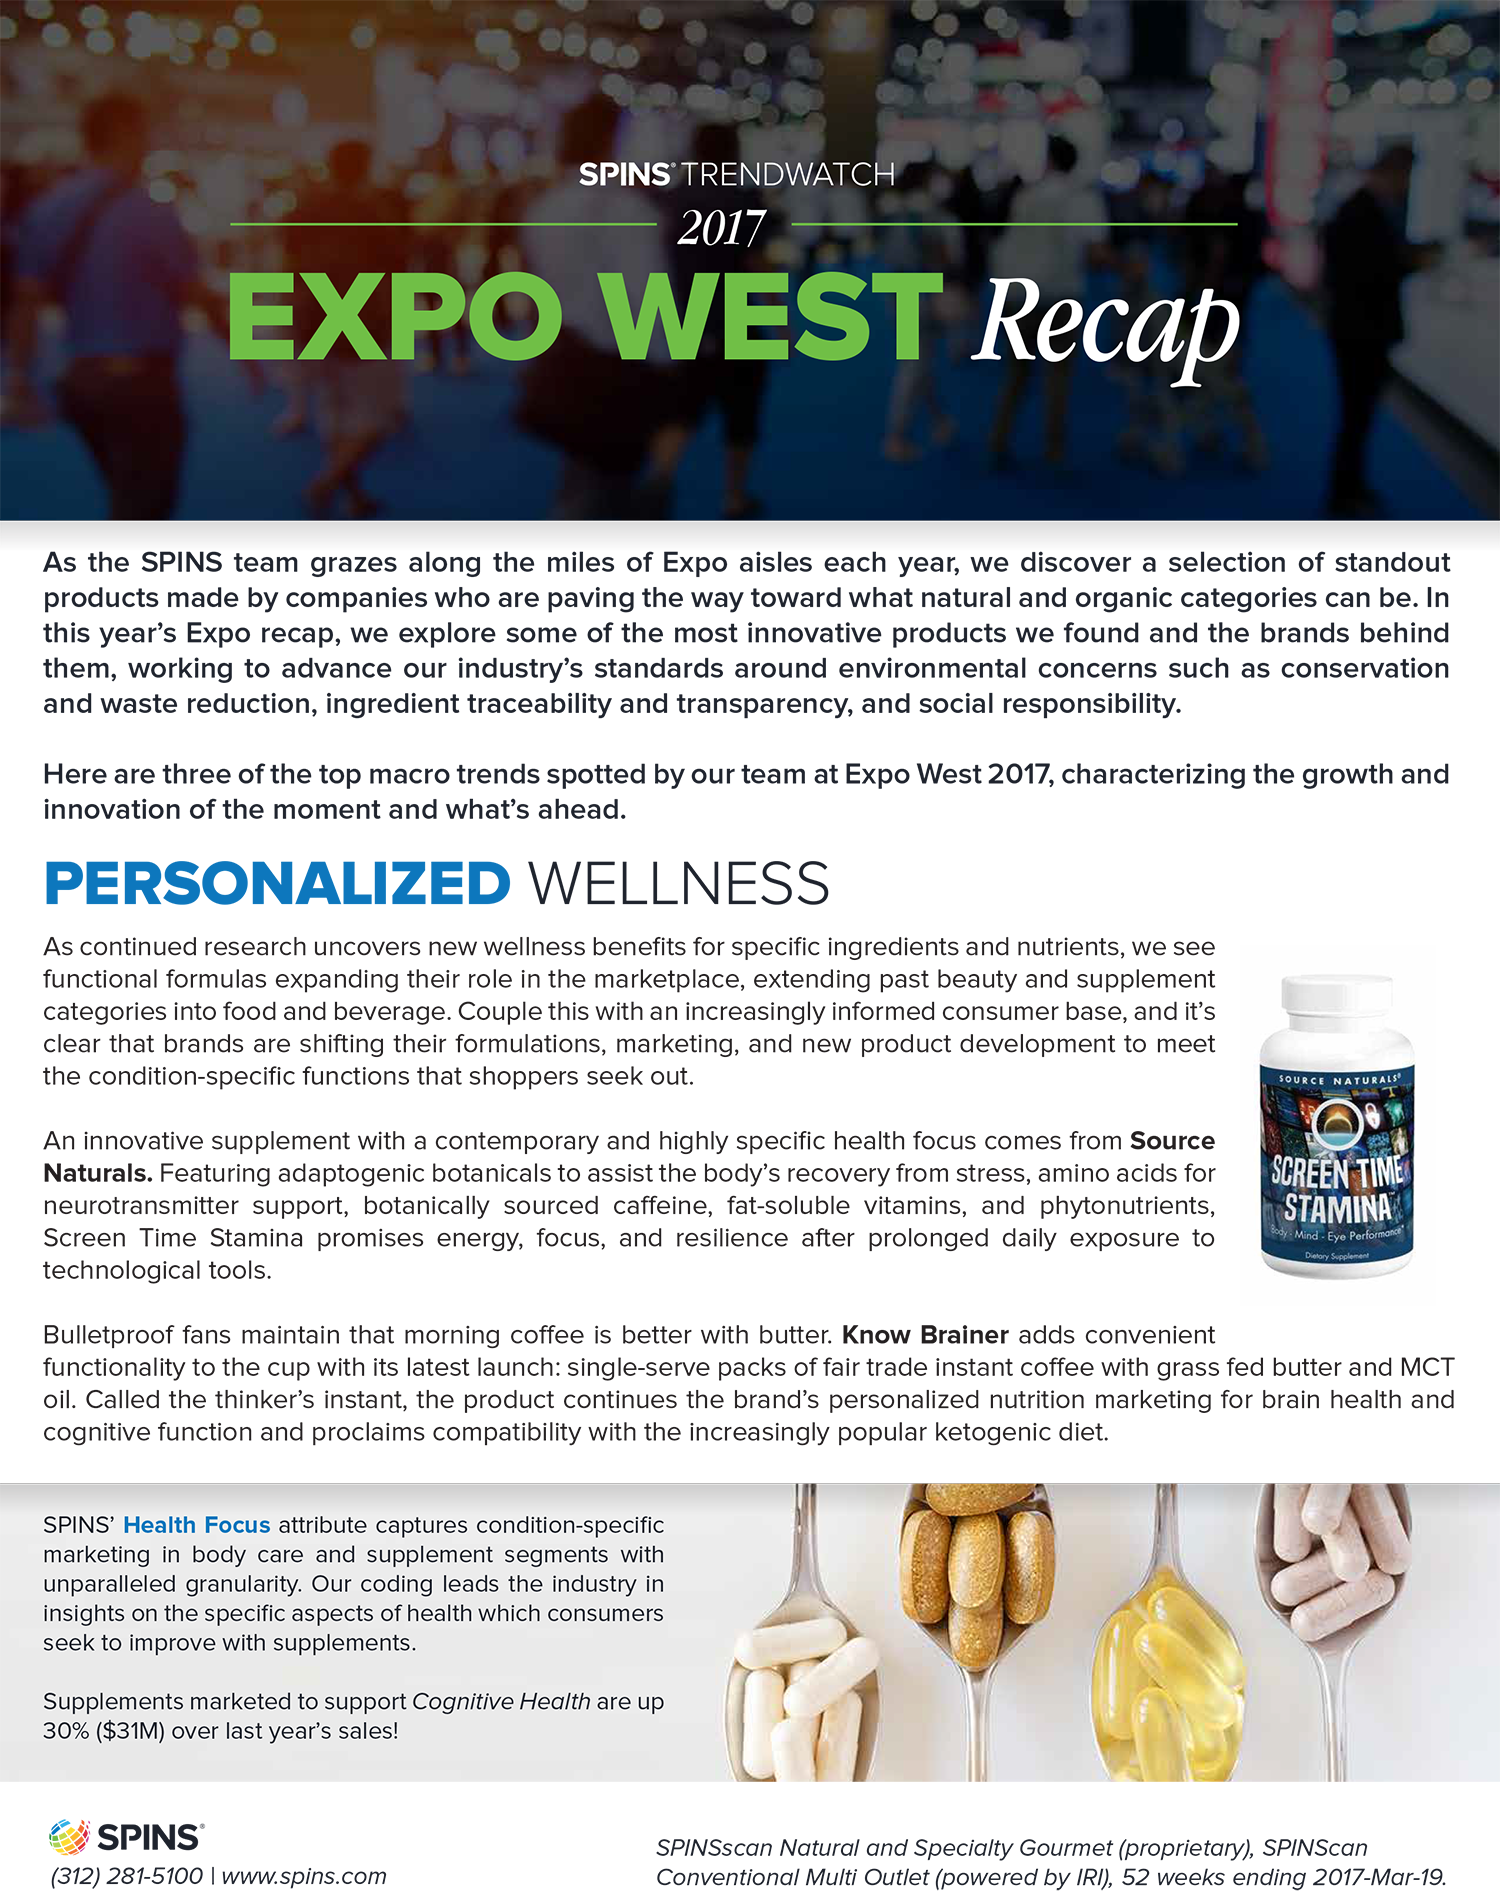 SPINS Trend watch 2017 Expo West Recap